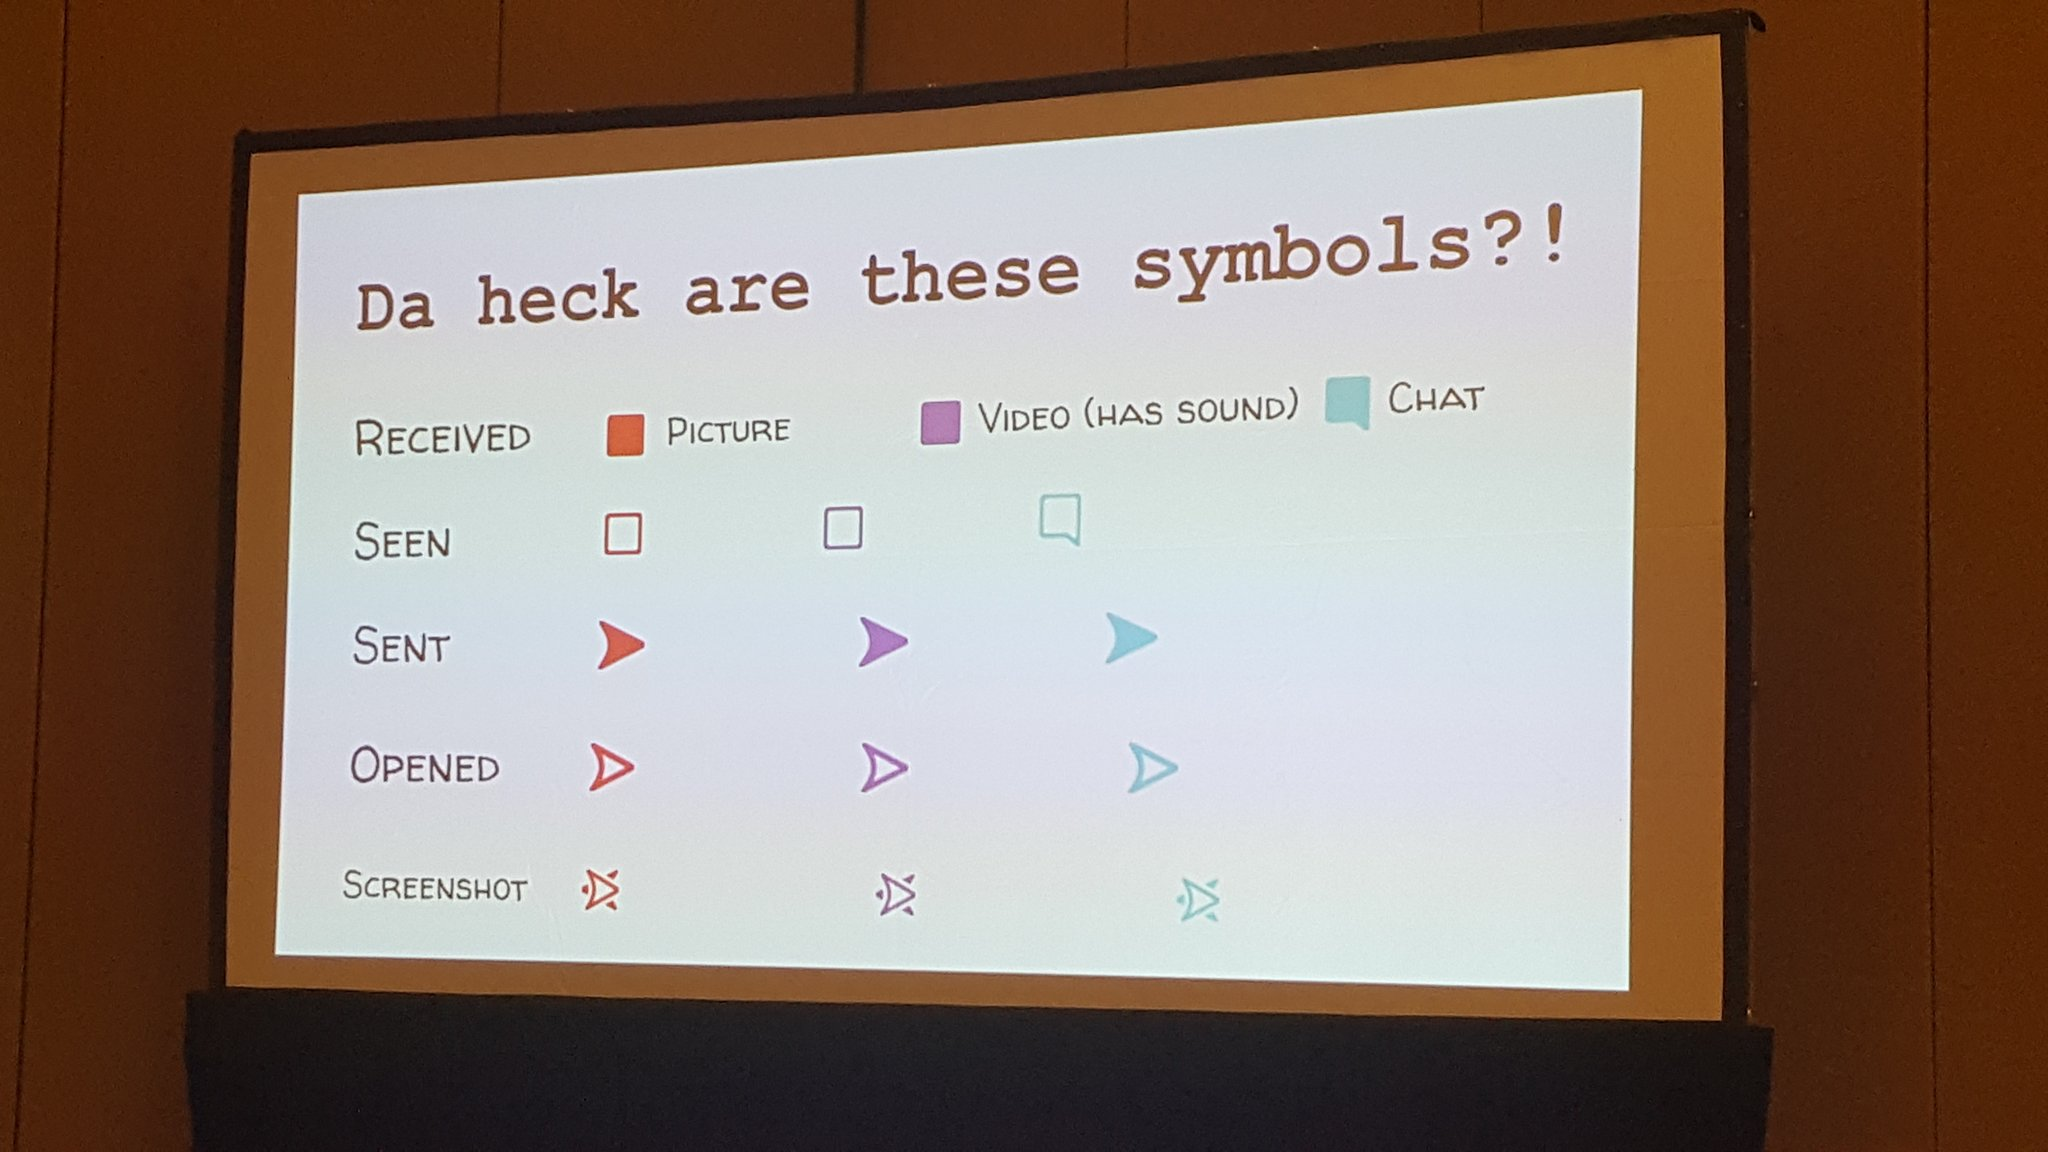 Decoding alllllll of the symbols in Snapchat. Here's a good start! #mcs10 #heweb16 https://t.co/6wY5HfT4S8